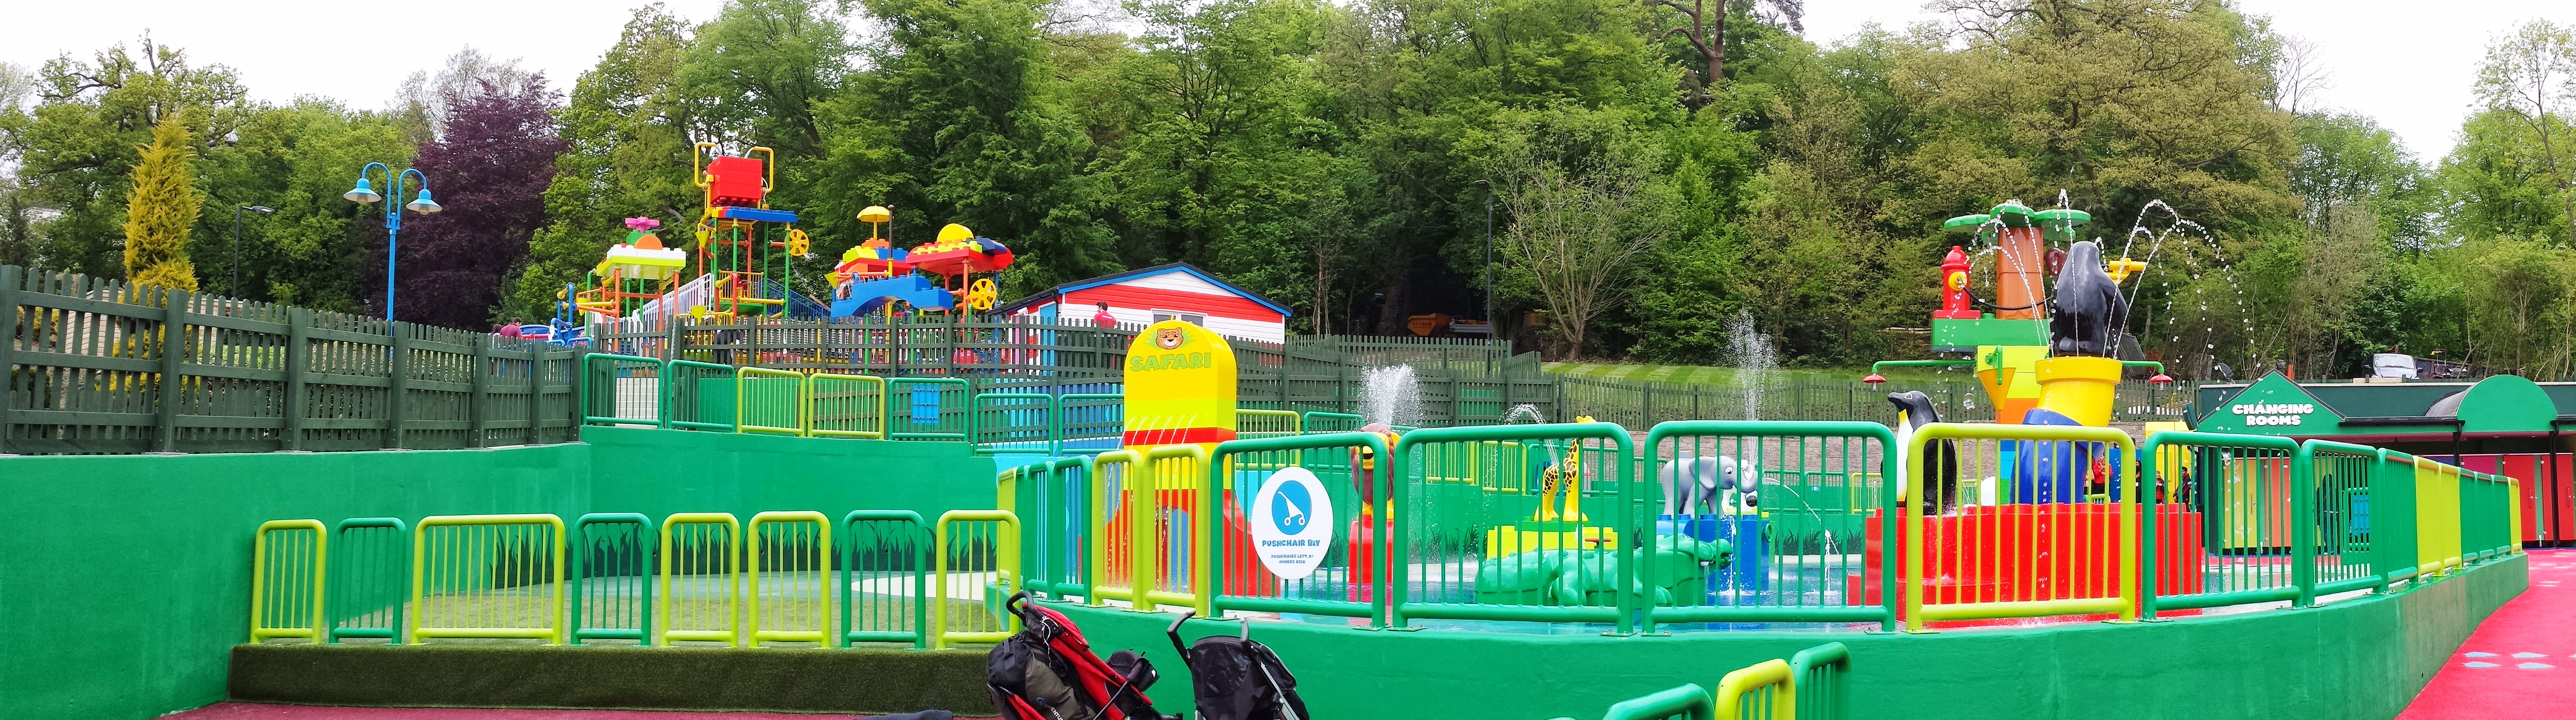 First Look At The New Duplo Valley At LEGOLAND Windsor